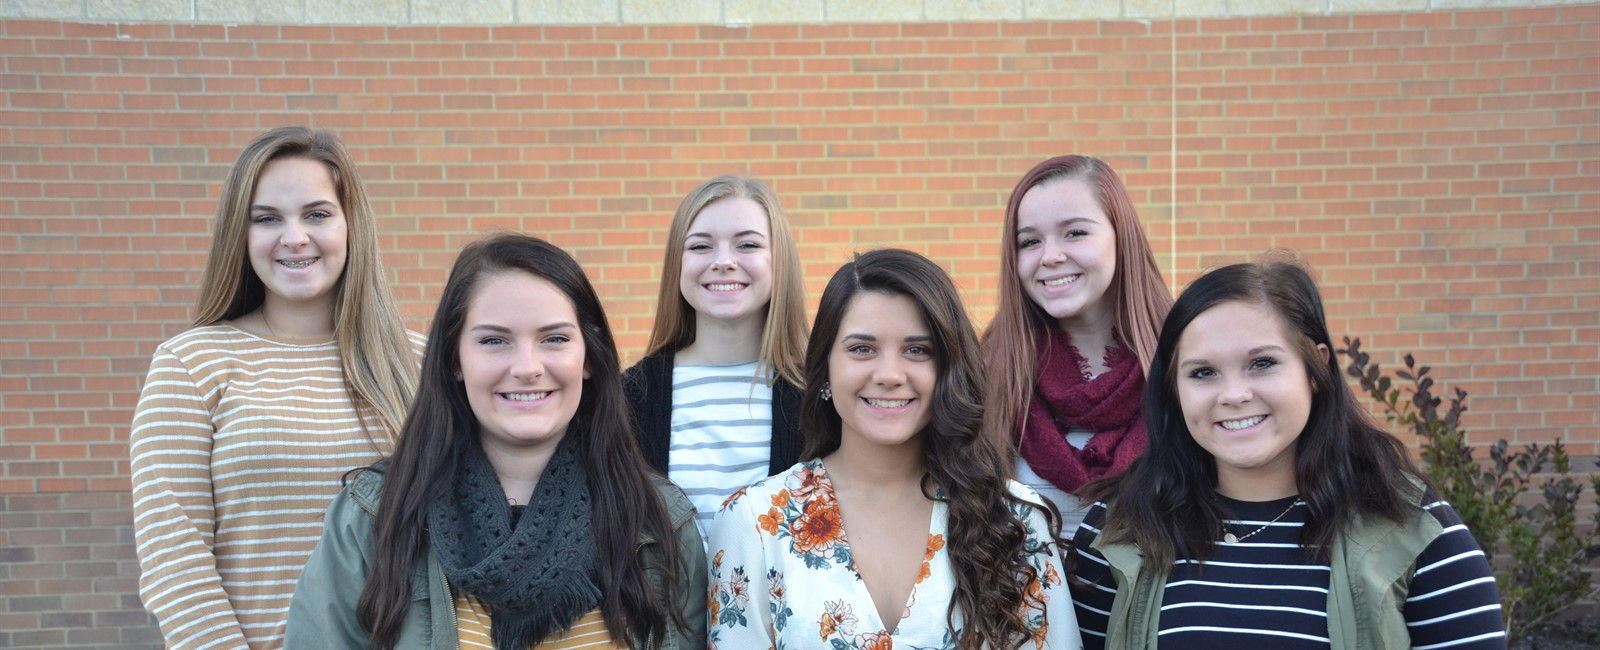 Congratulations to the 2018 Homecoming Court: Jocelyn McMillen, Gabrielle Lozoya, Addison Brendlinger, Hannah Warner, Skye Somerville, and Riley Newell.